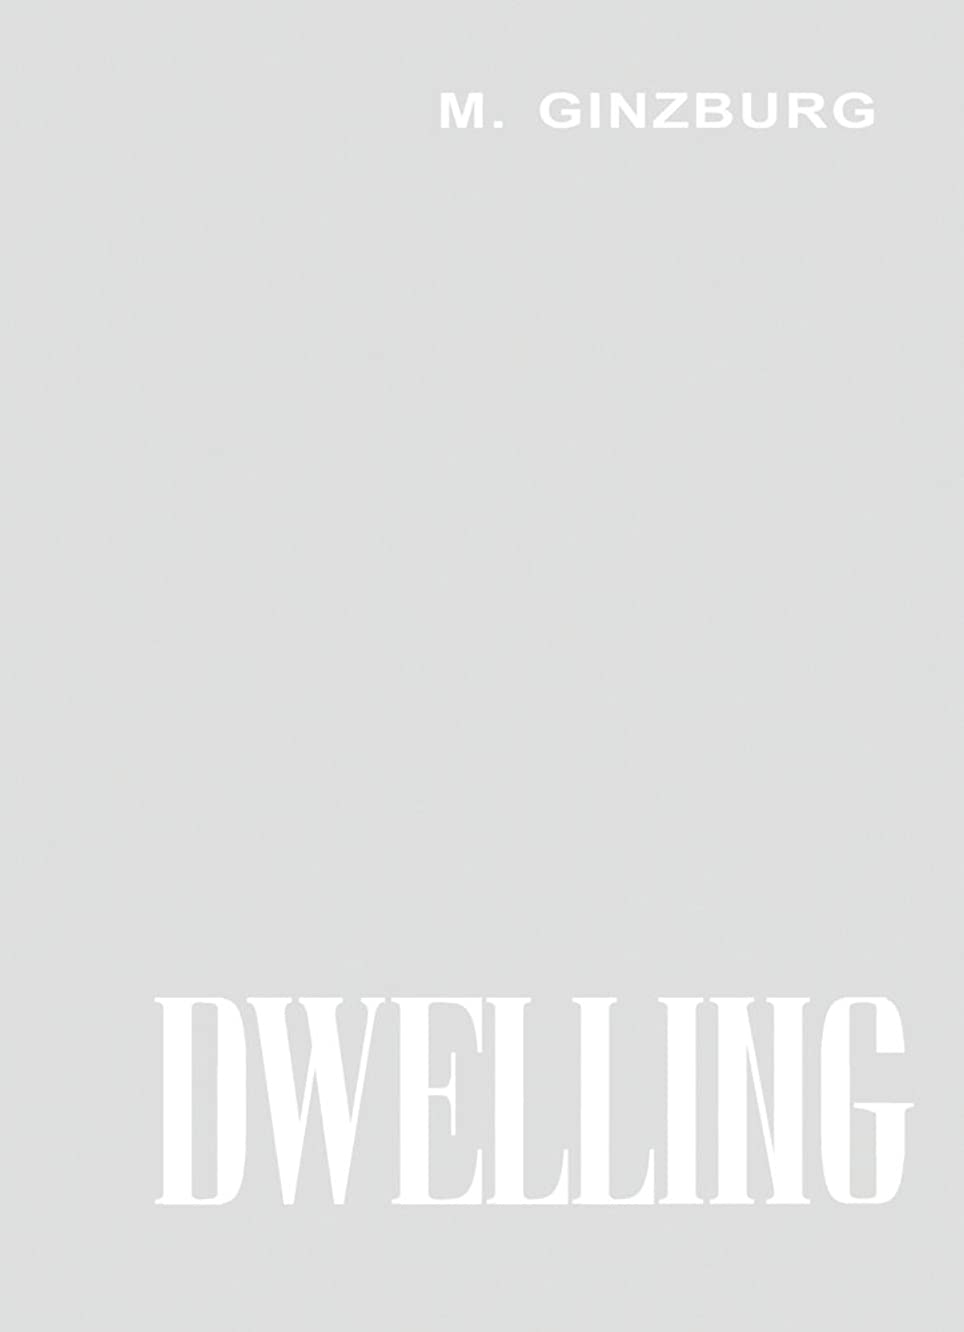 Dwelling: Five Years' Work on the Problem of the Habitation